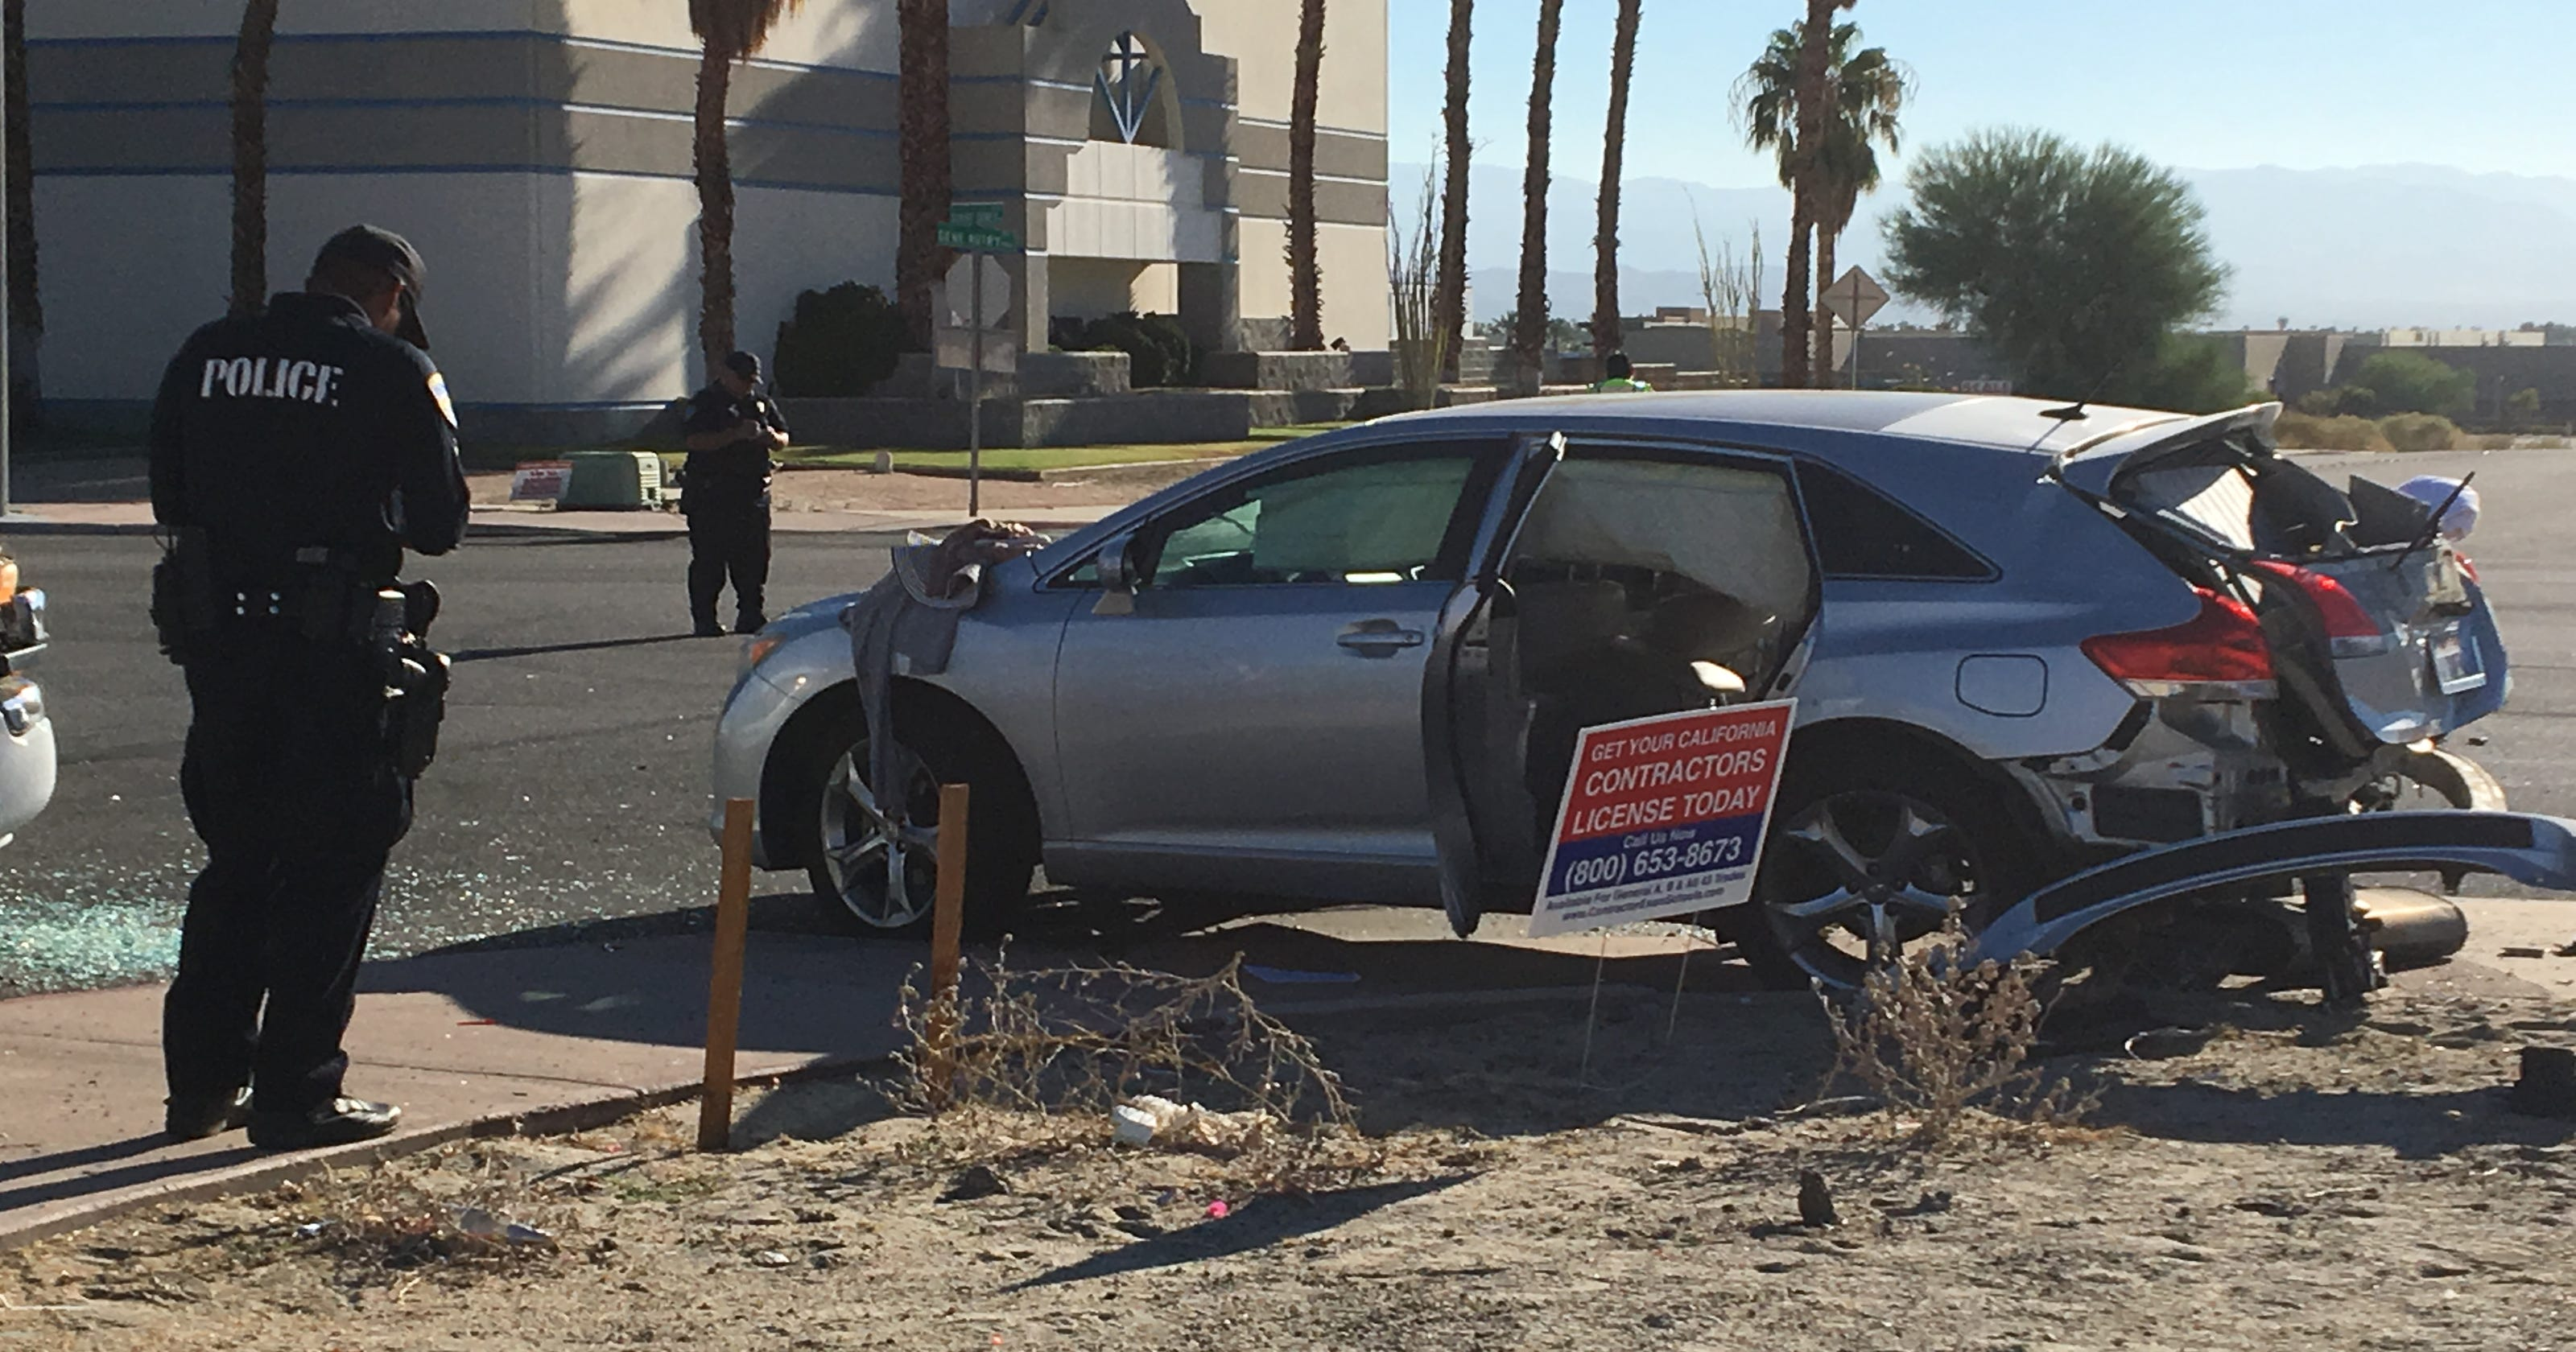 Palm Springs Collision On Gene Autry Seriously Injures Child Pedestrian Extinguishes Car Fire